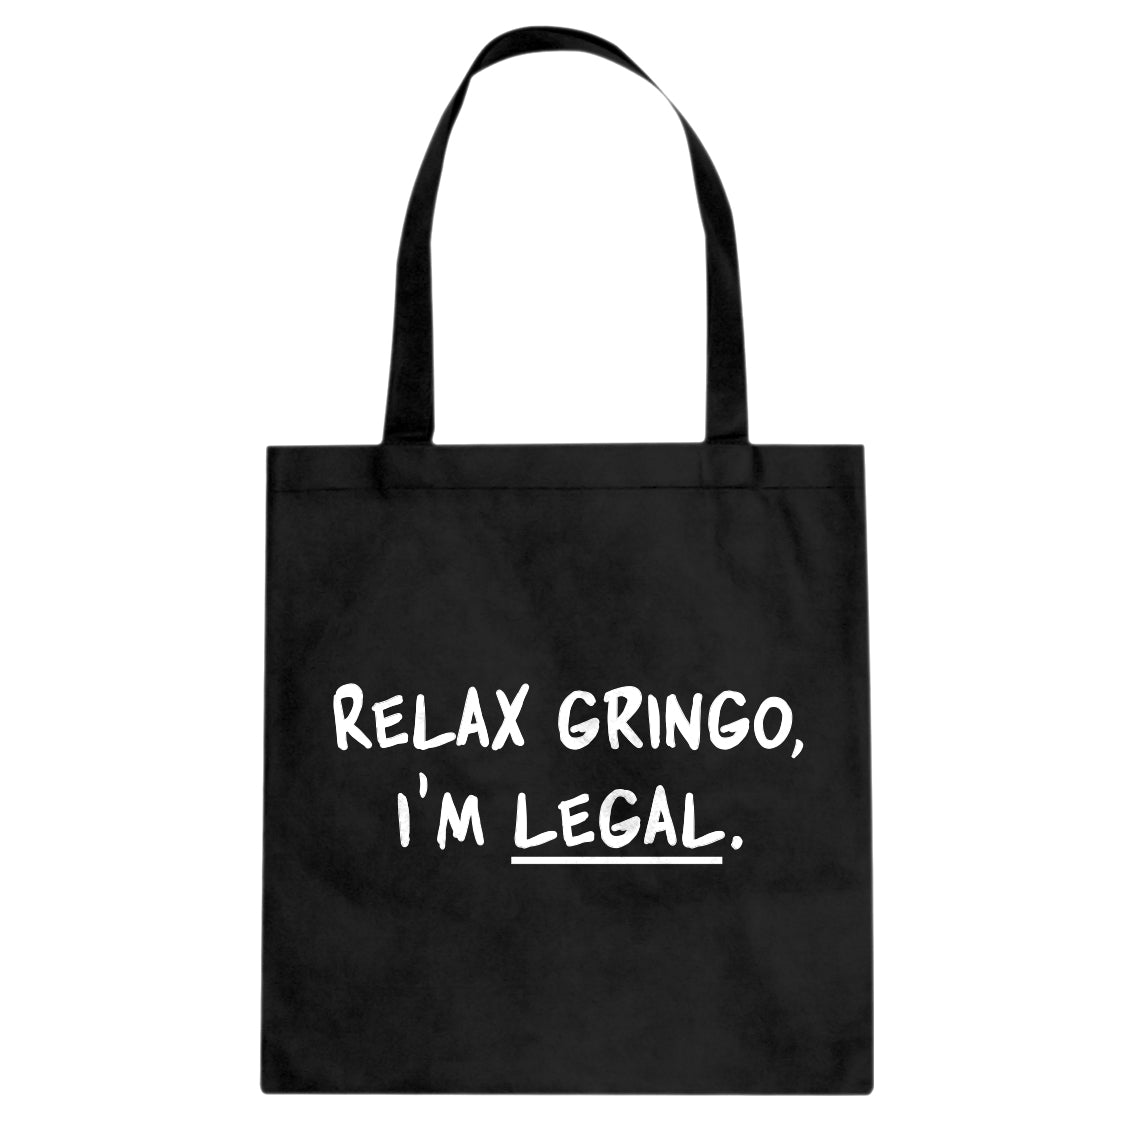 Tote Relax Gringo I'm Legal Canvas Tote Bag